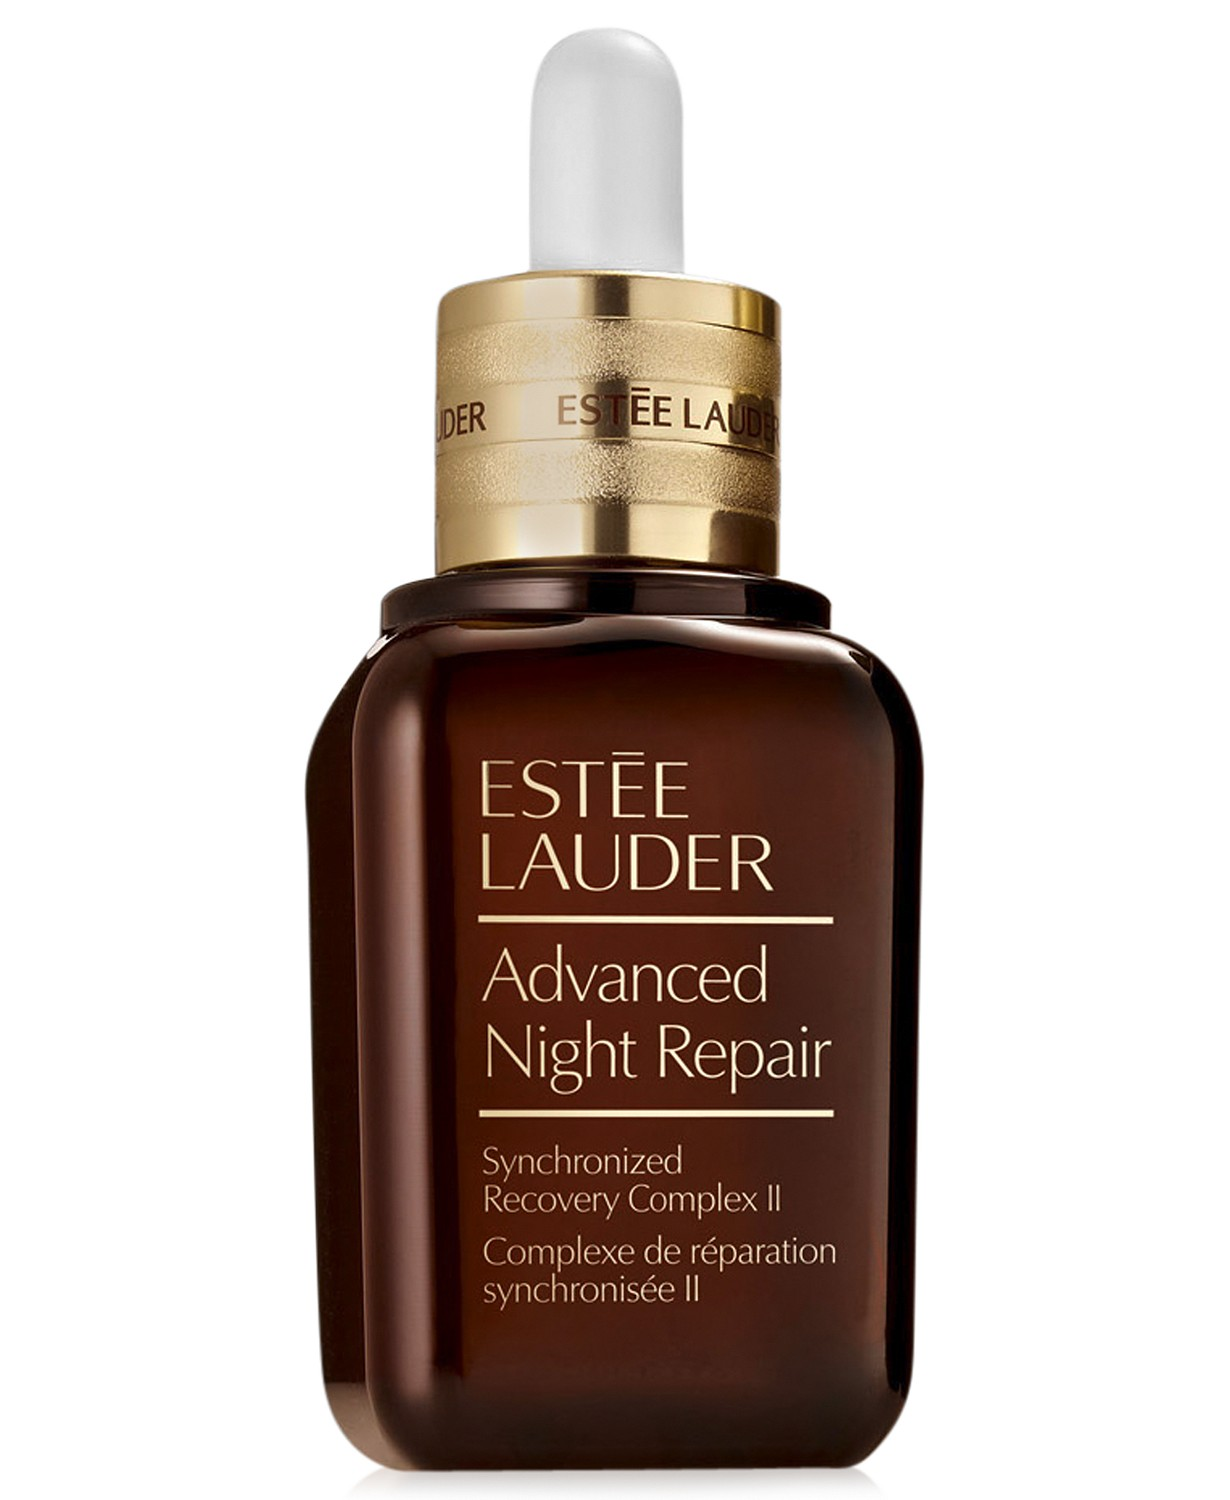 Estee Lauder Advanced Night Repair Synchronized Recovery Complex II Jumbo Size, 3.9 oz.